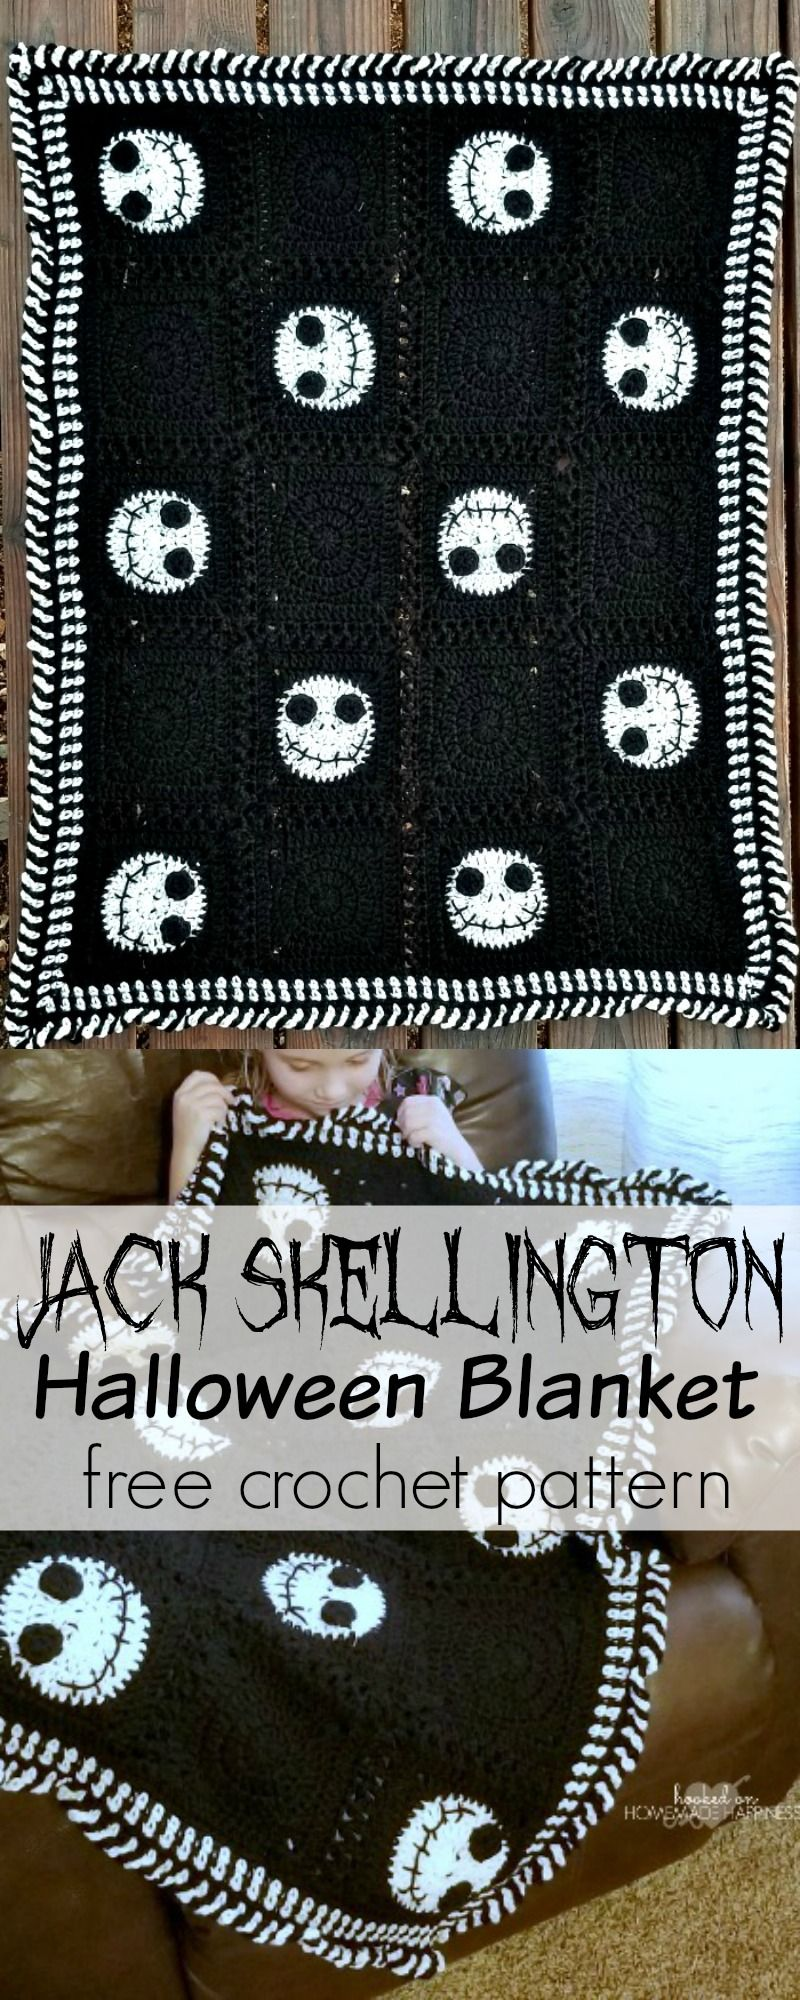 Halloween Crochet Blanket | Crochet/ Knitting | Pinterest | Holiday ...